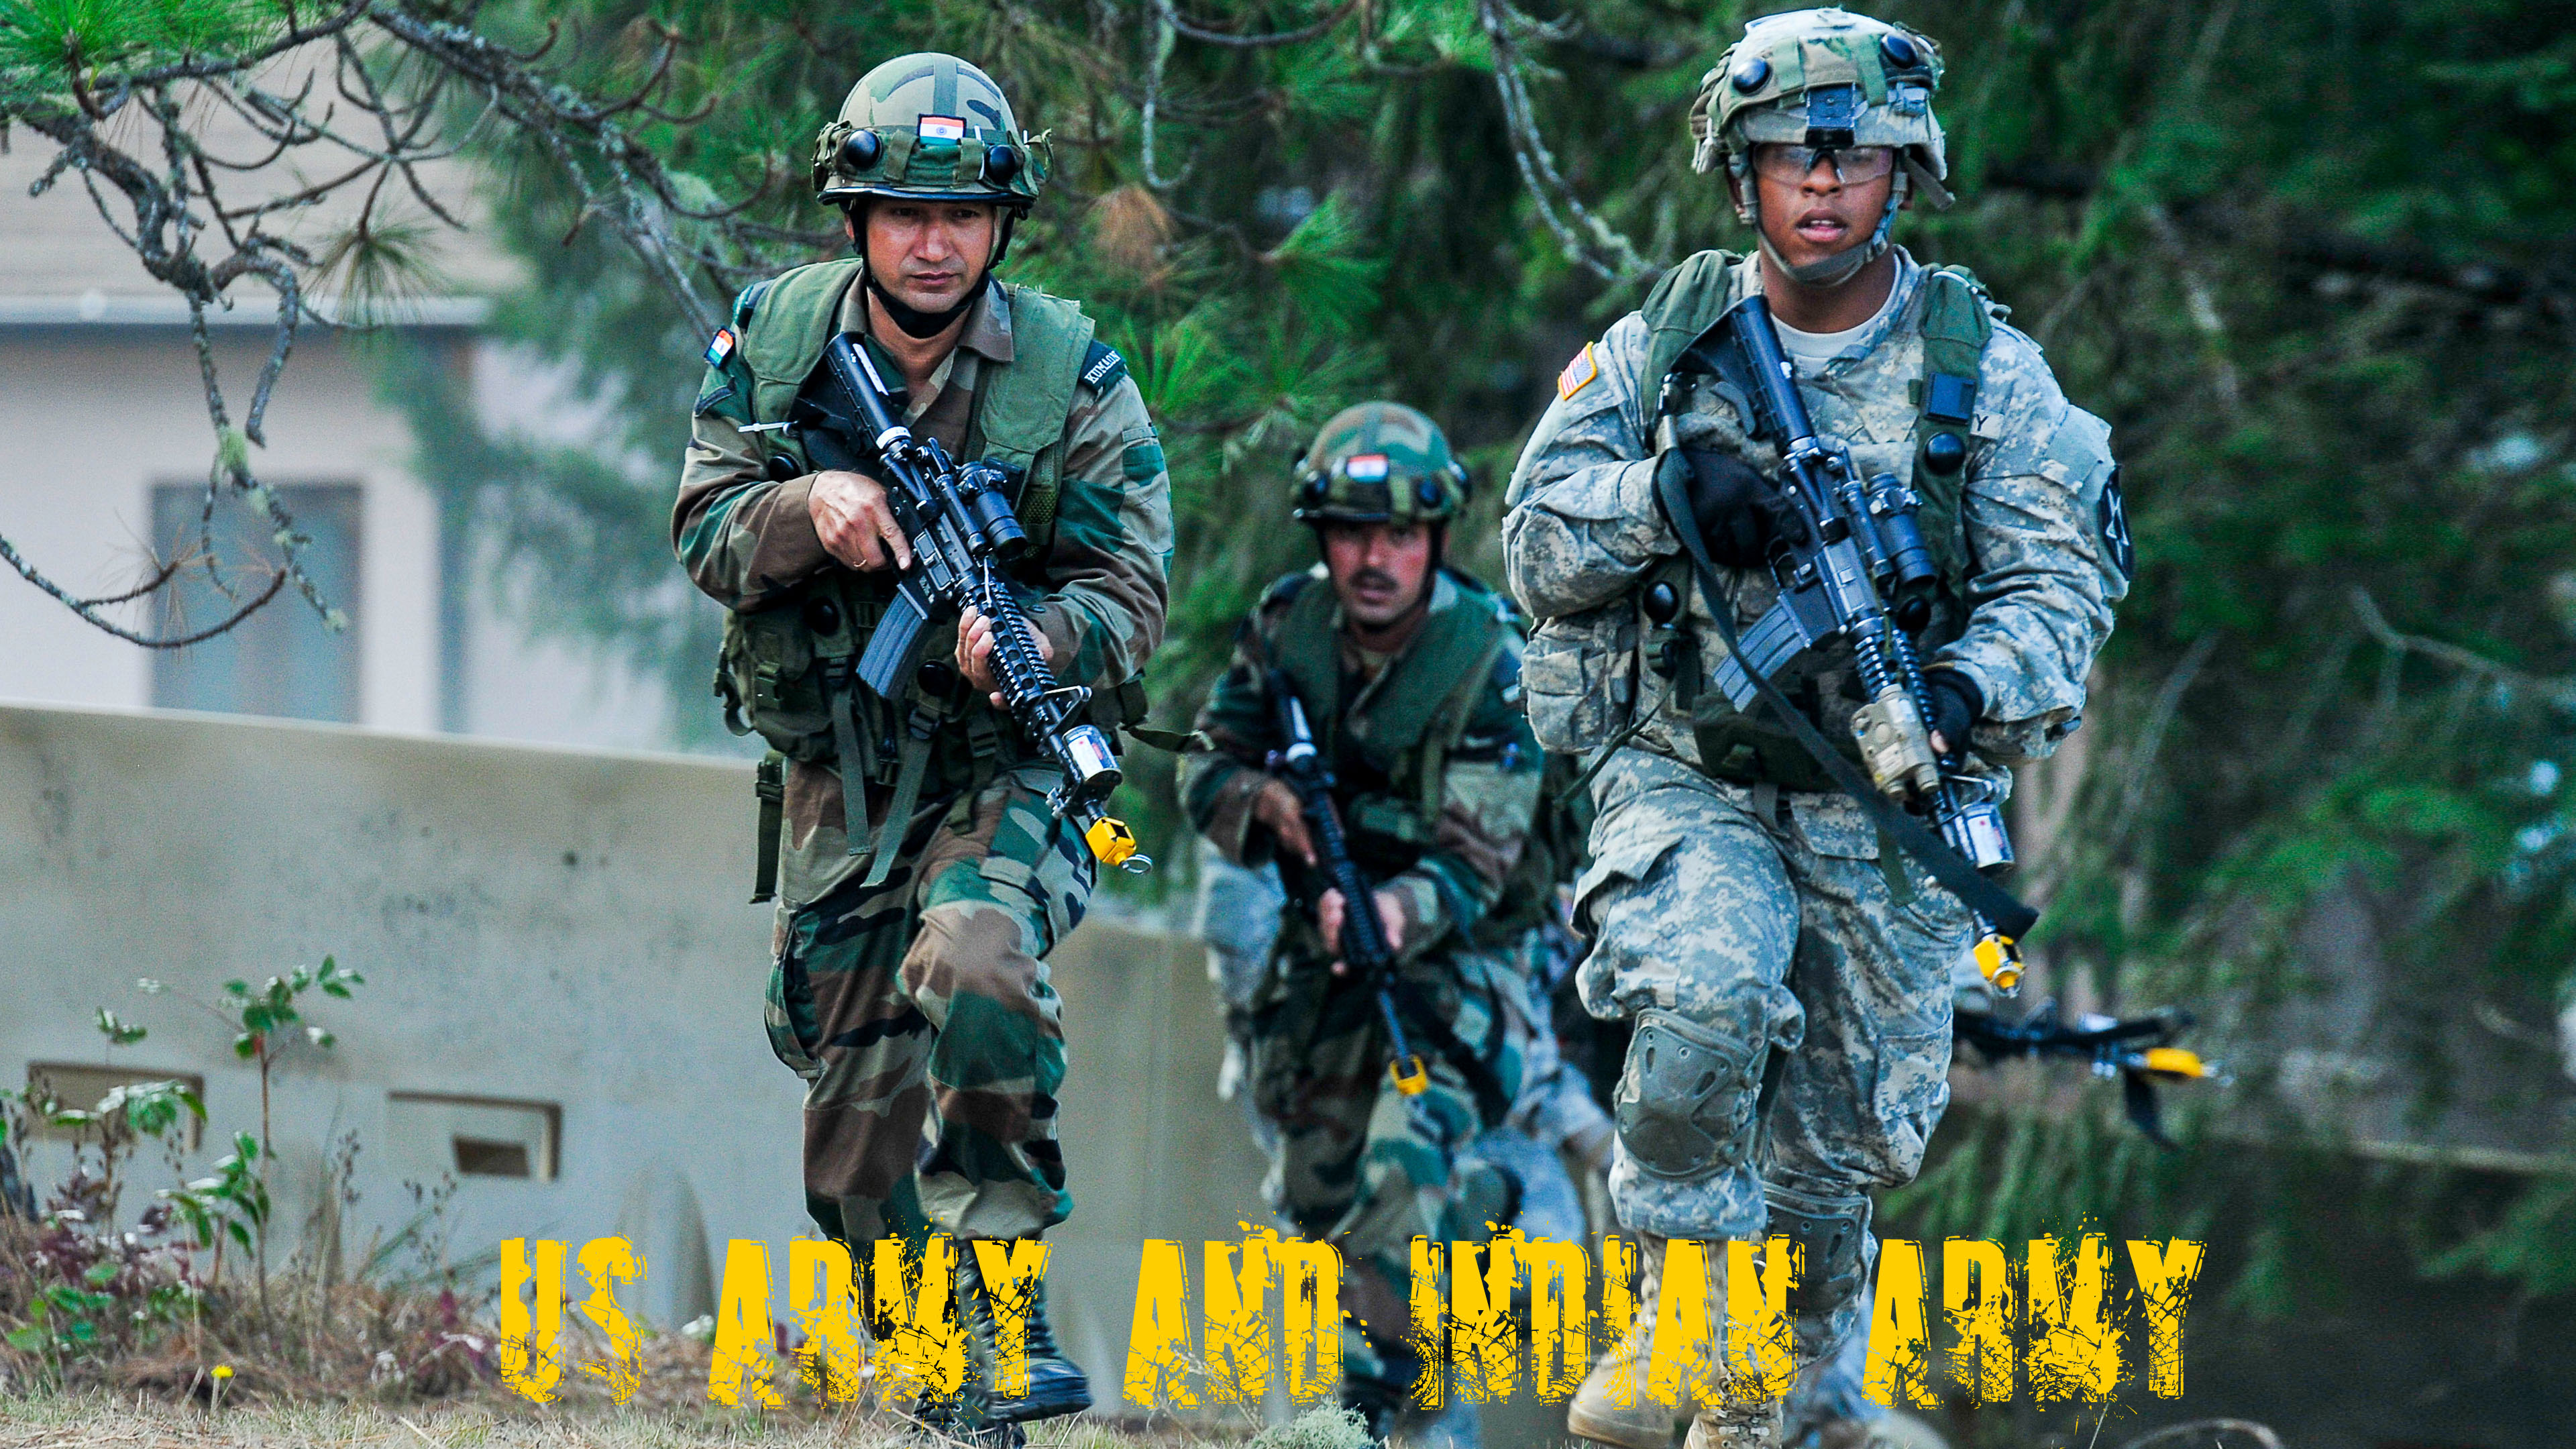 Indian Army Wallpaper